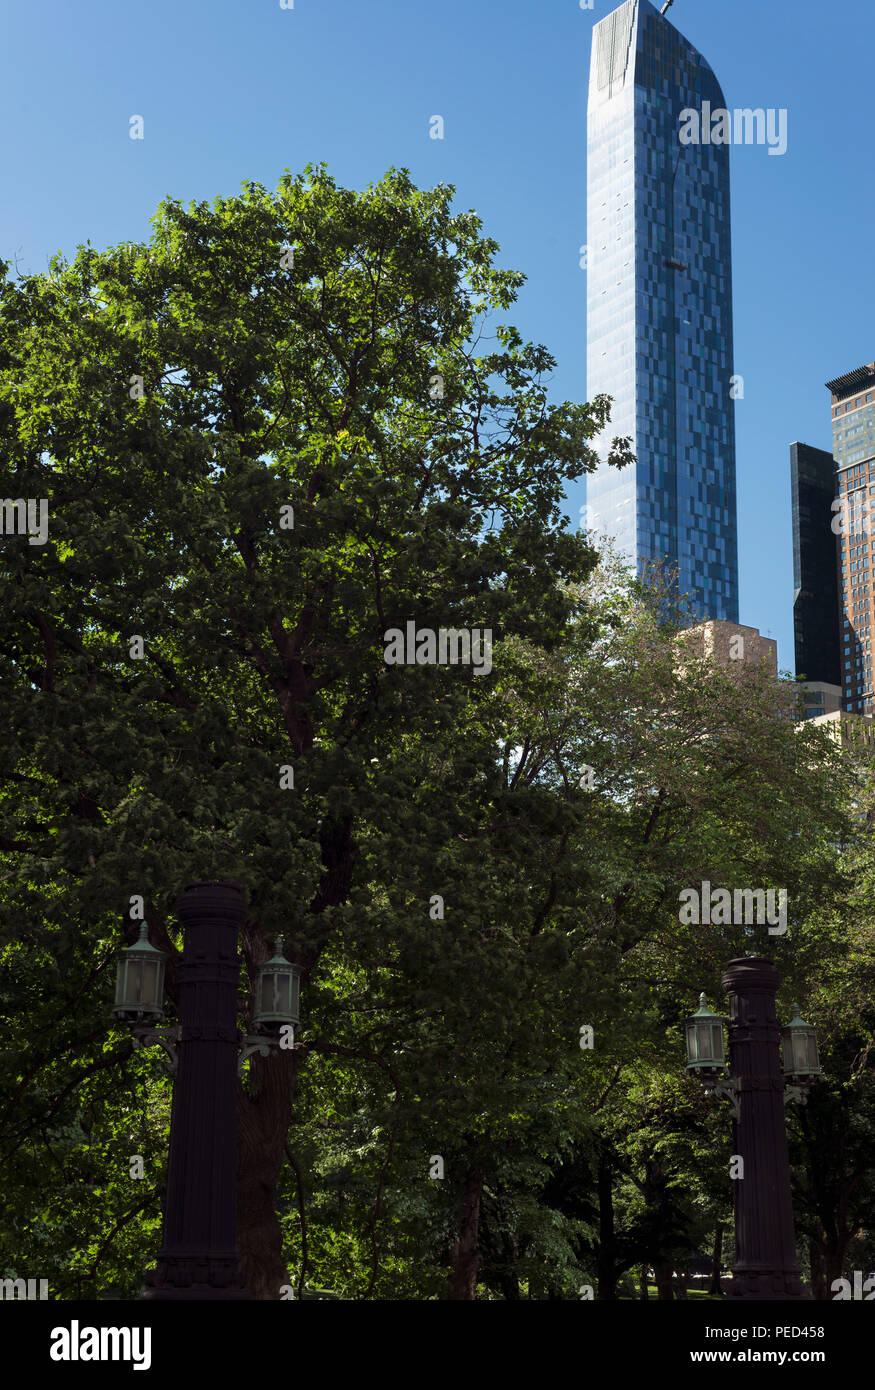 The One57 building towering over Central Park, New York - Stock Image